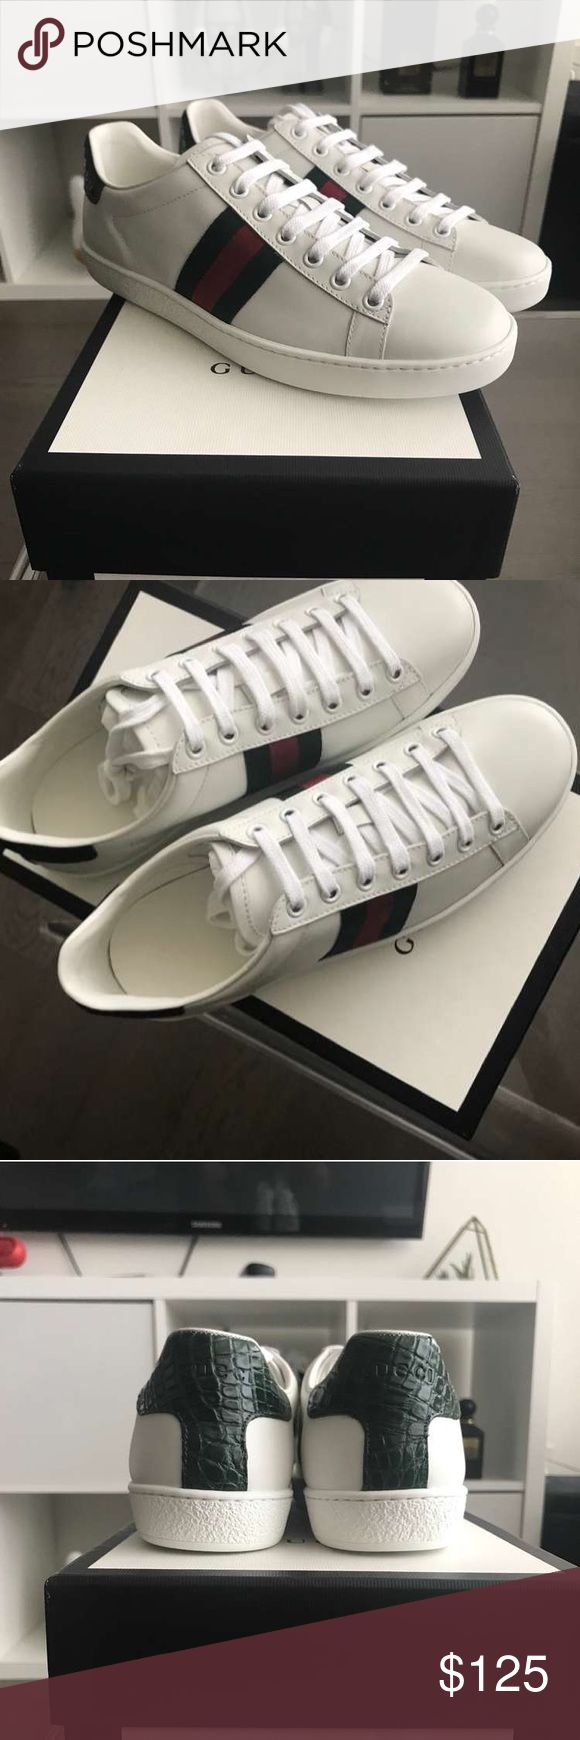 Gucci SnakeSkin Ace Sneakers i Have sizes 6-13 Available!  Please Text me at (708) 971-2376 to see if i still have your size in stock or for more pictures Before purchase ! 100% authentic  comes with Box , Dustbags , Receipts And Carebooks price is Negotiable! Serious Inquires only! Gucci Shoes Sneakers